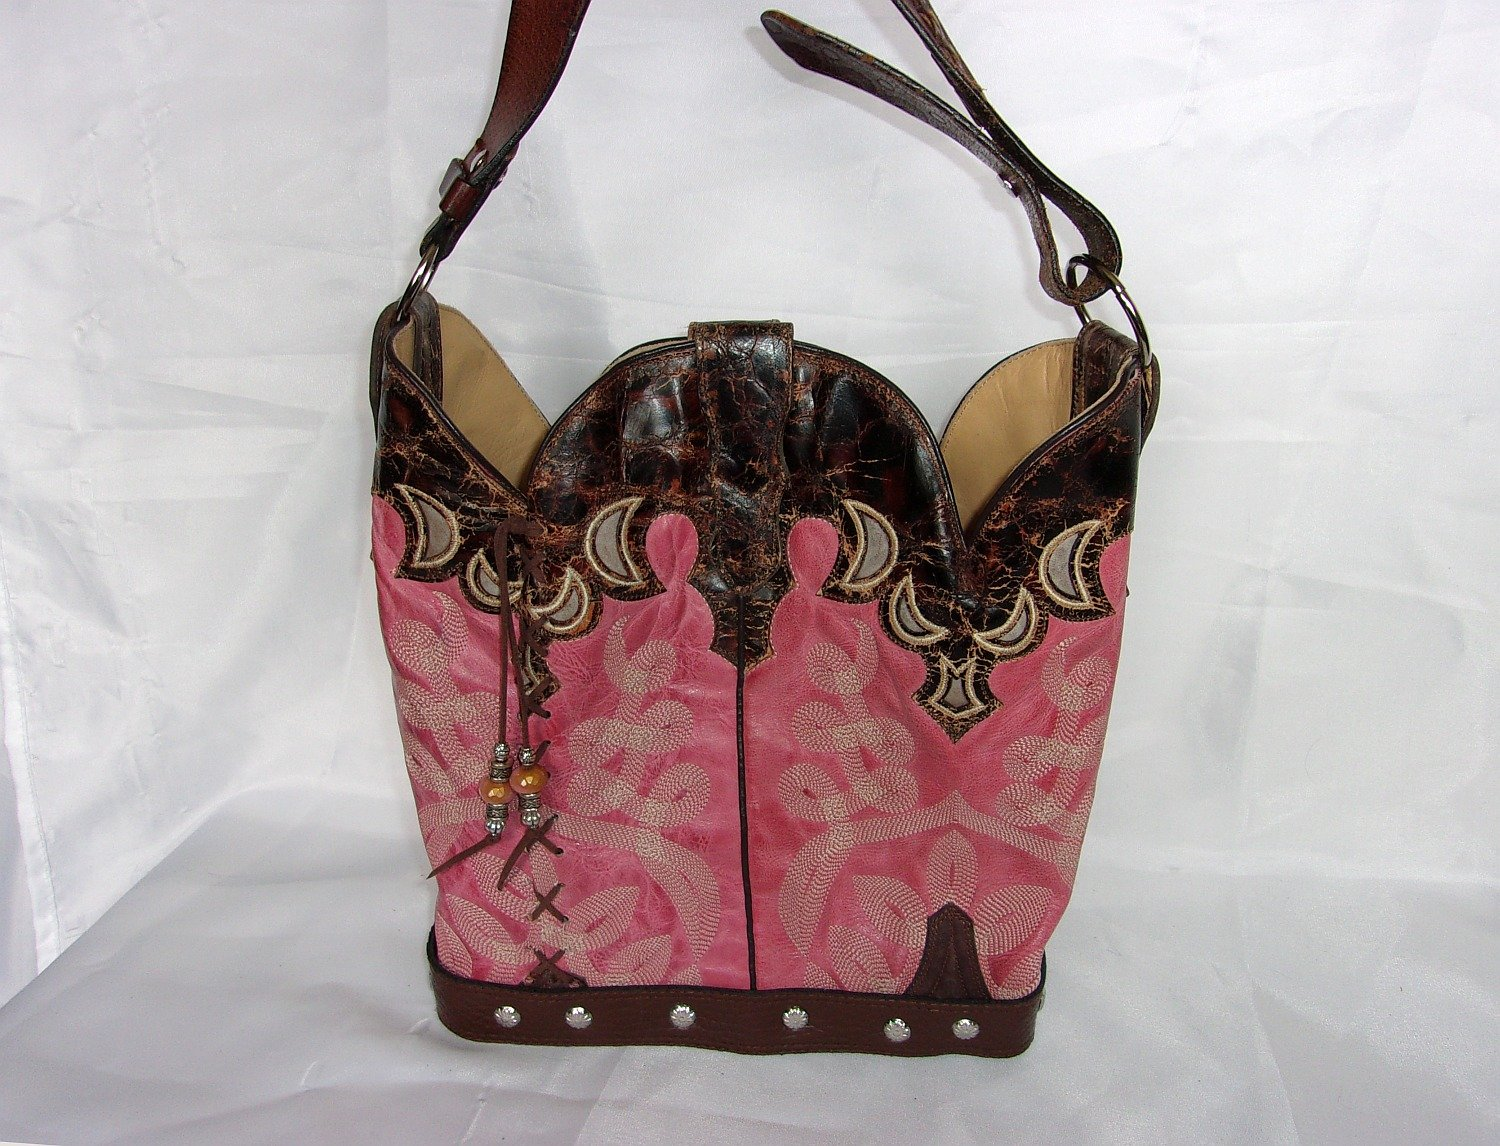 Cowboy Boot Purse Bucket Bag BK16 - Cowboy Boot Purses by Chris Thompson for Distinctive Western Fashion